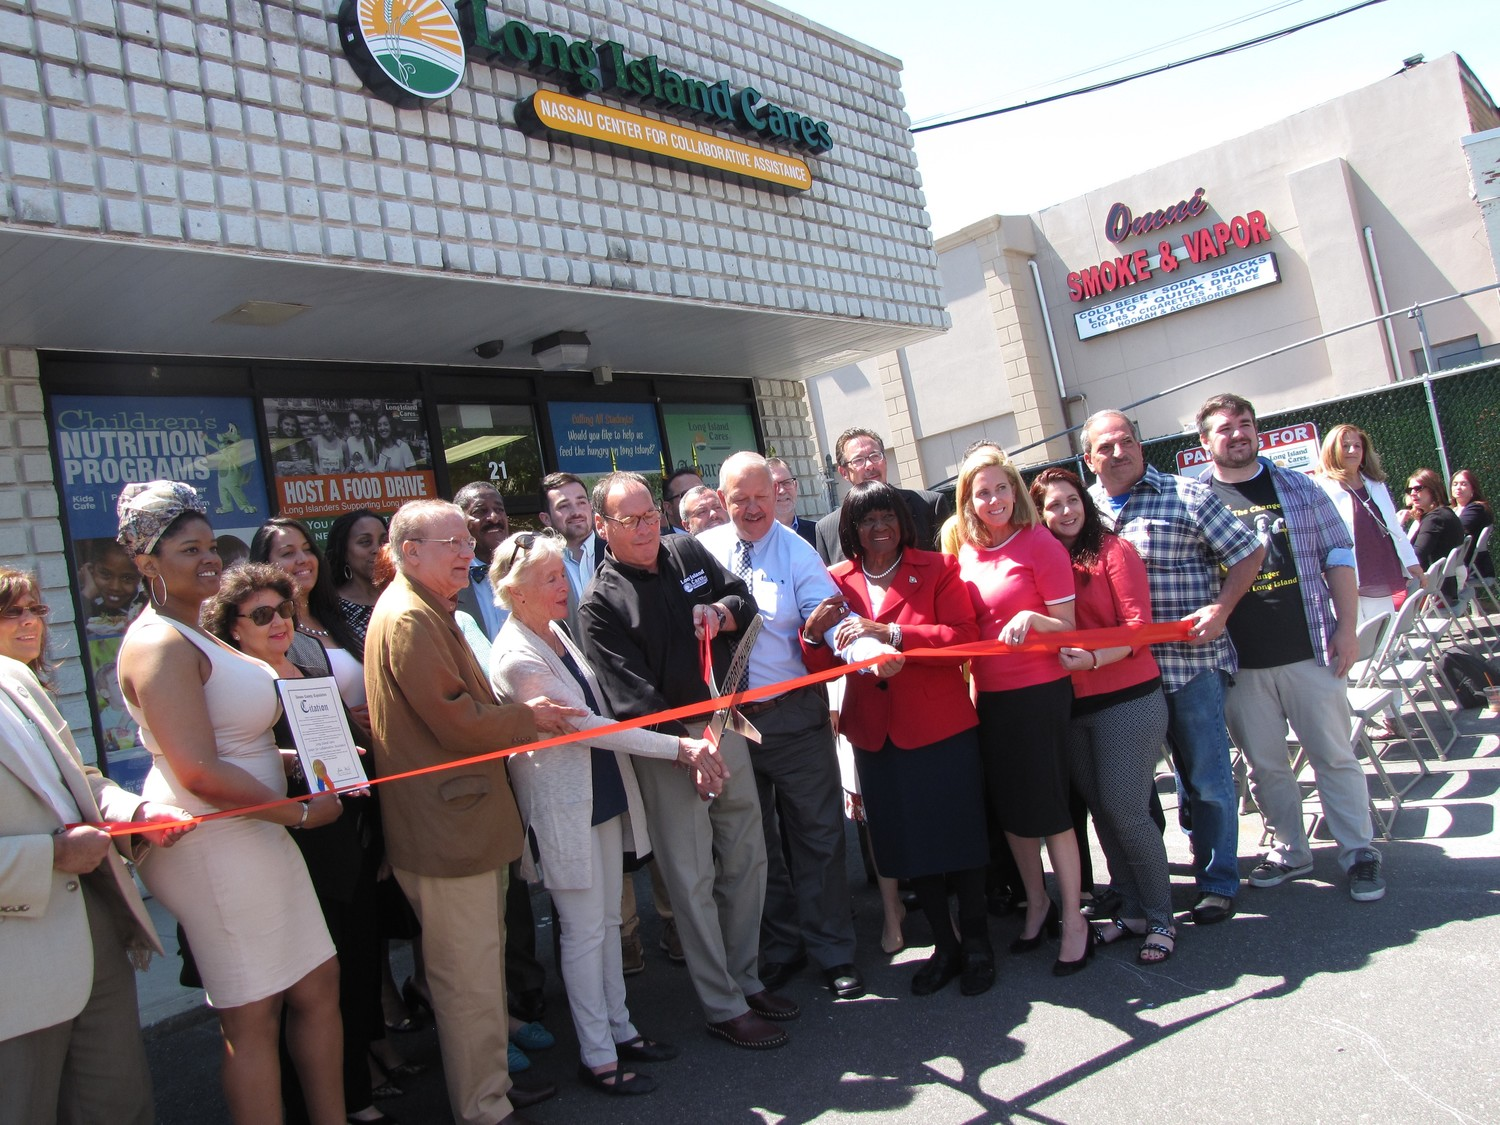 Paule Pachter, CEO, center, of the nonprofit Long Island Cares, cut the ribbon on the organization's new food pantry on Sunrise Highway in Freeport on June 12. Joining him were Sandra Chapin, to his right, widow of LIC founder Harry Chapin, and a host of local leaders.